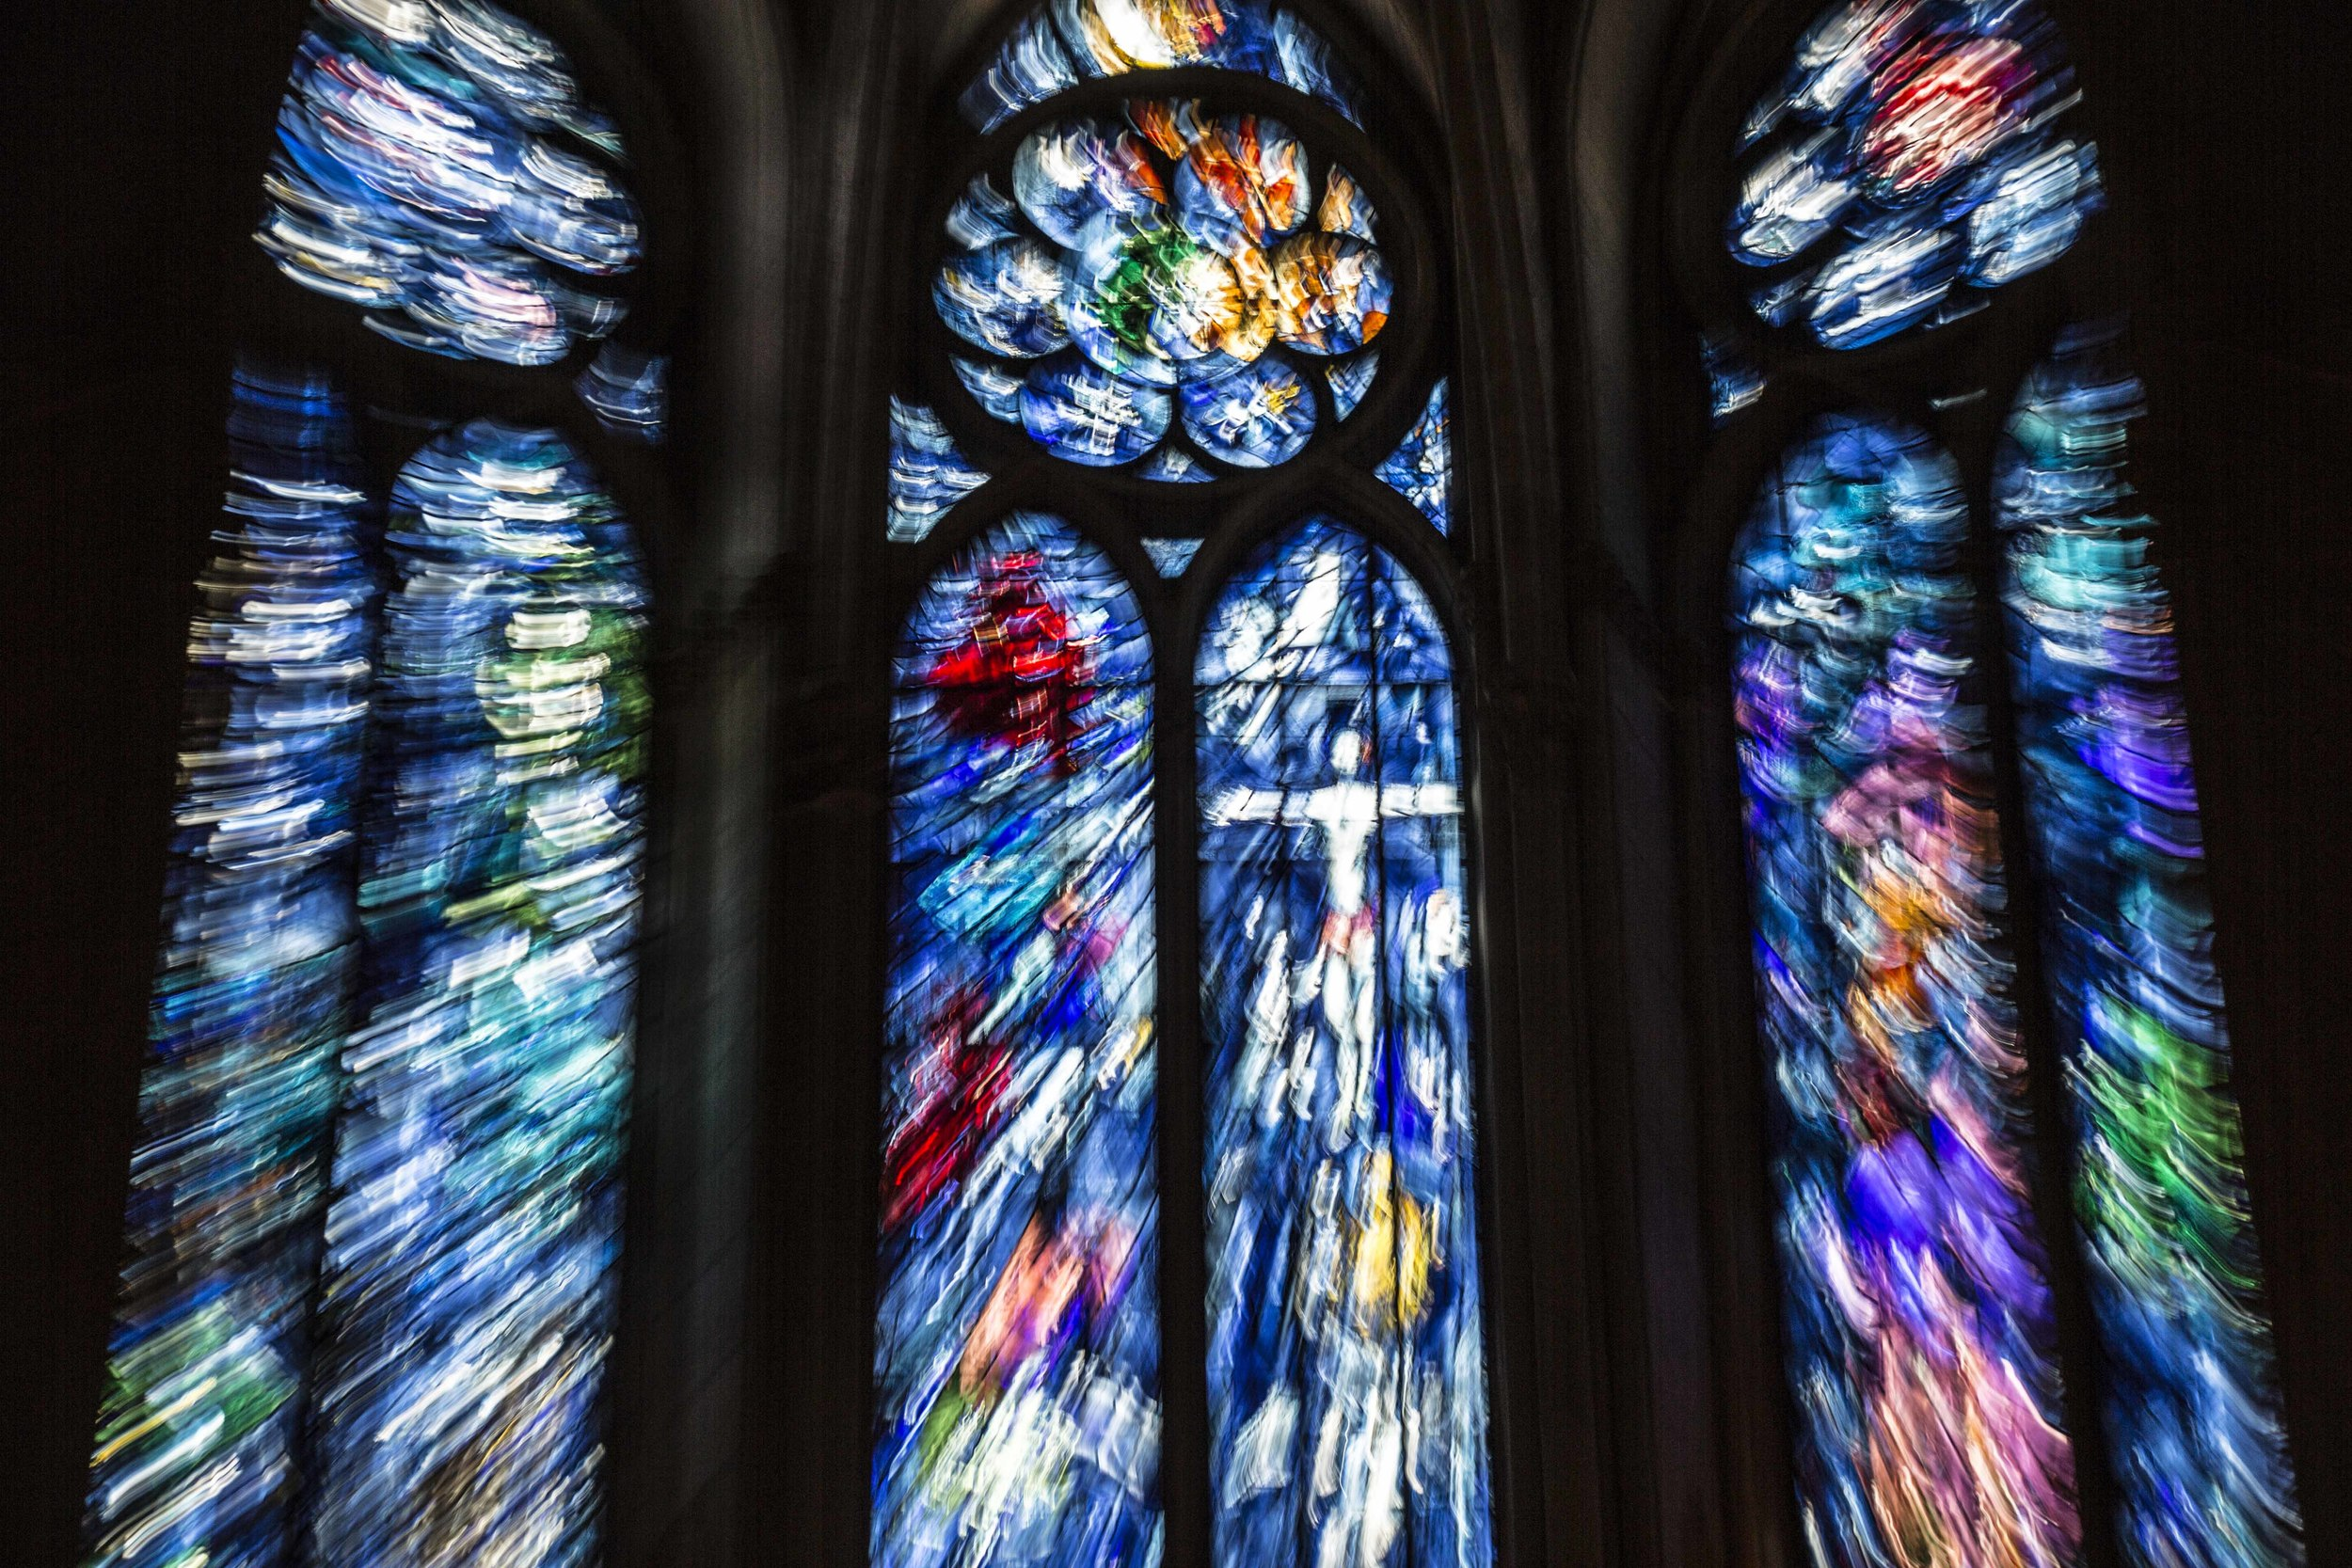 Colors of Reims Cathedral #3, 2012